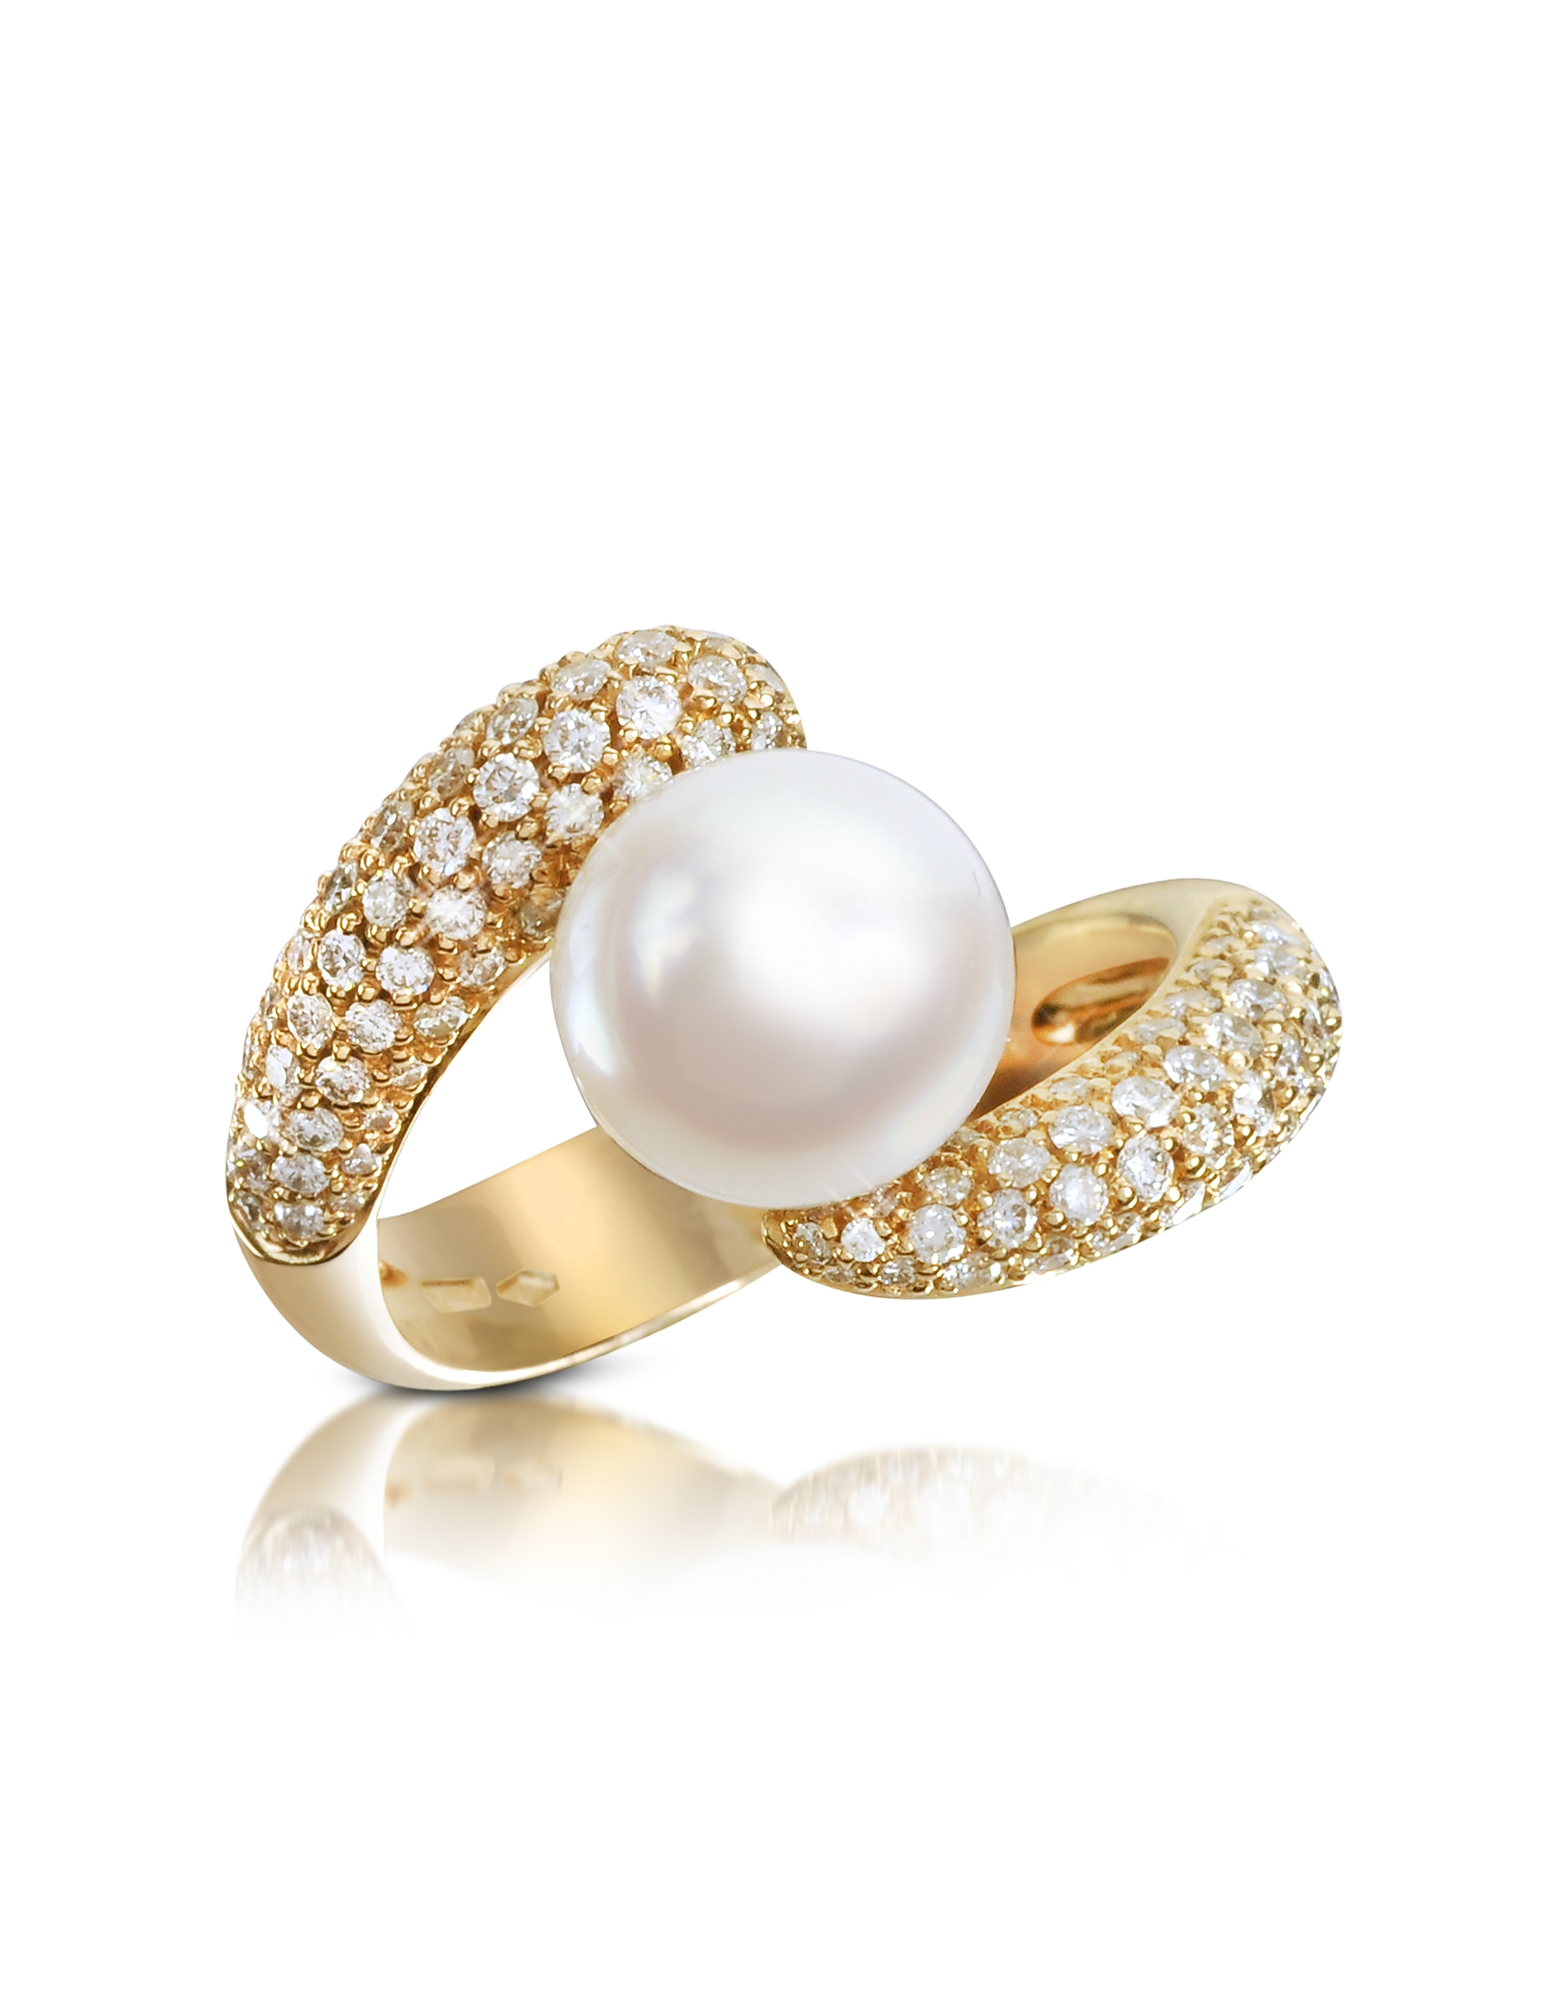 Forzieri Rings, 0.70 ct Diamond and Pearl 18K Gold Ring